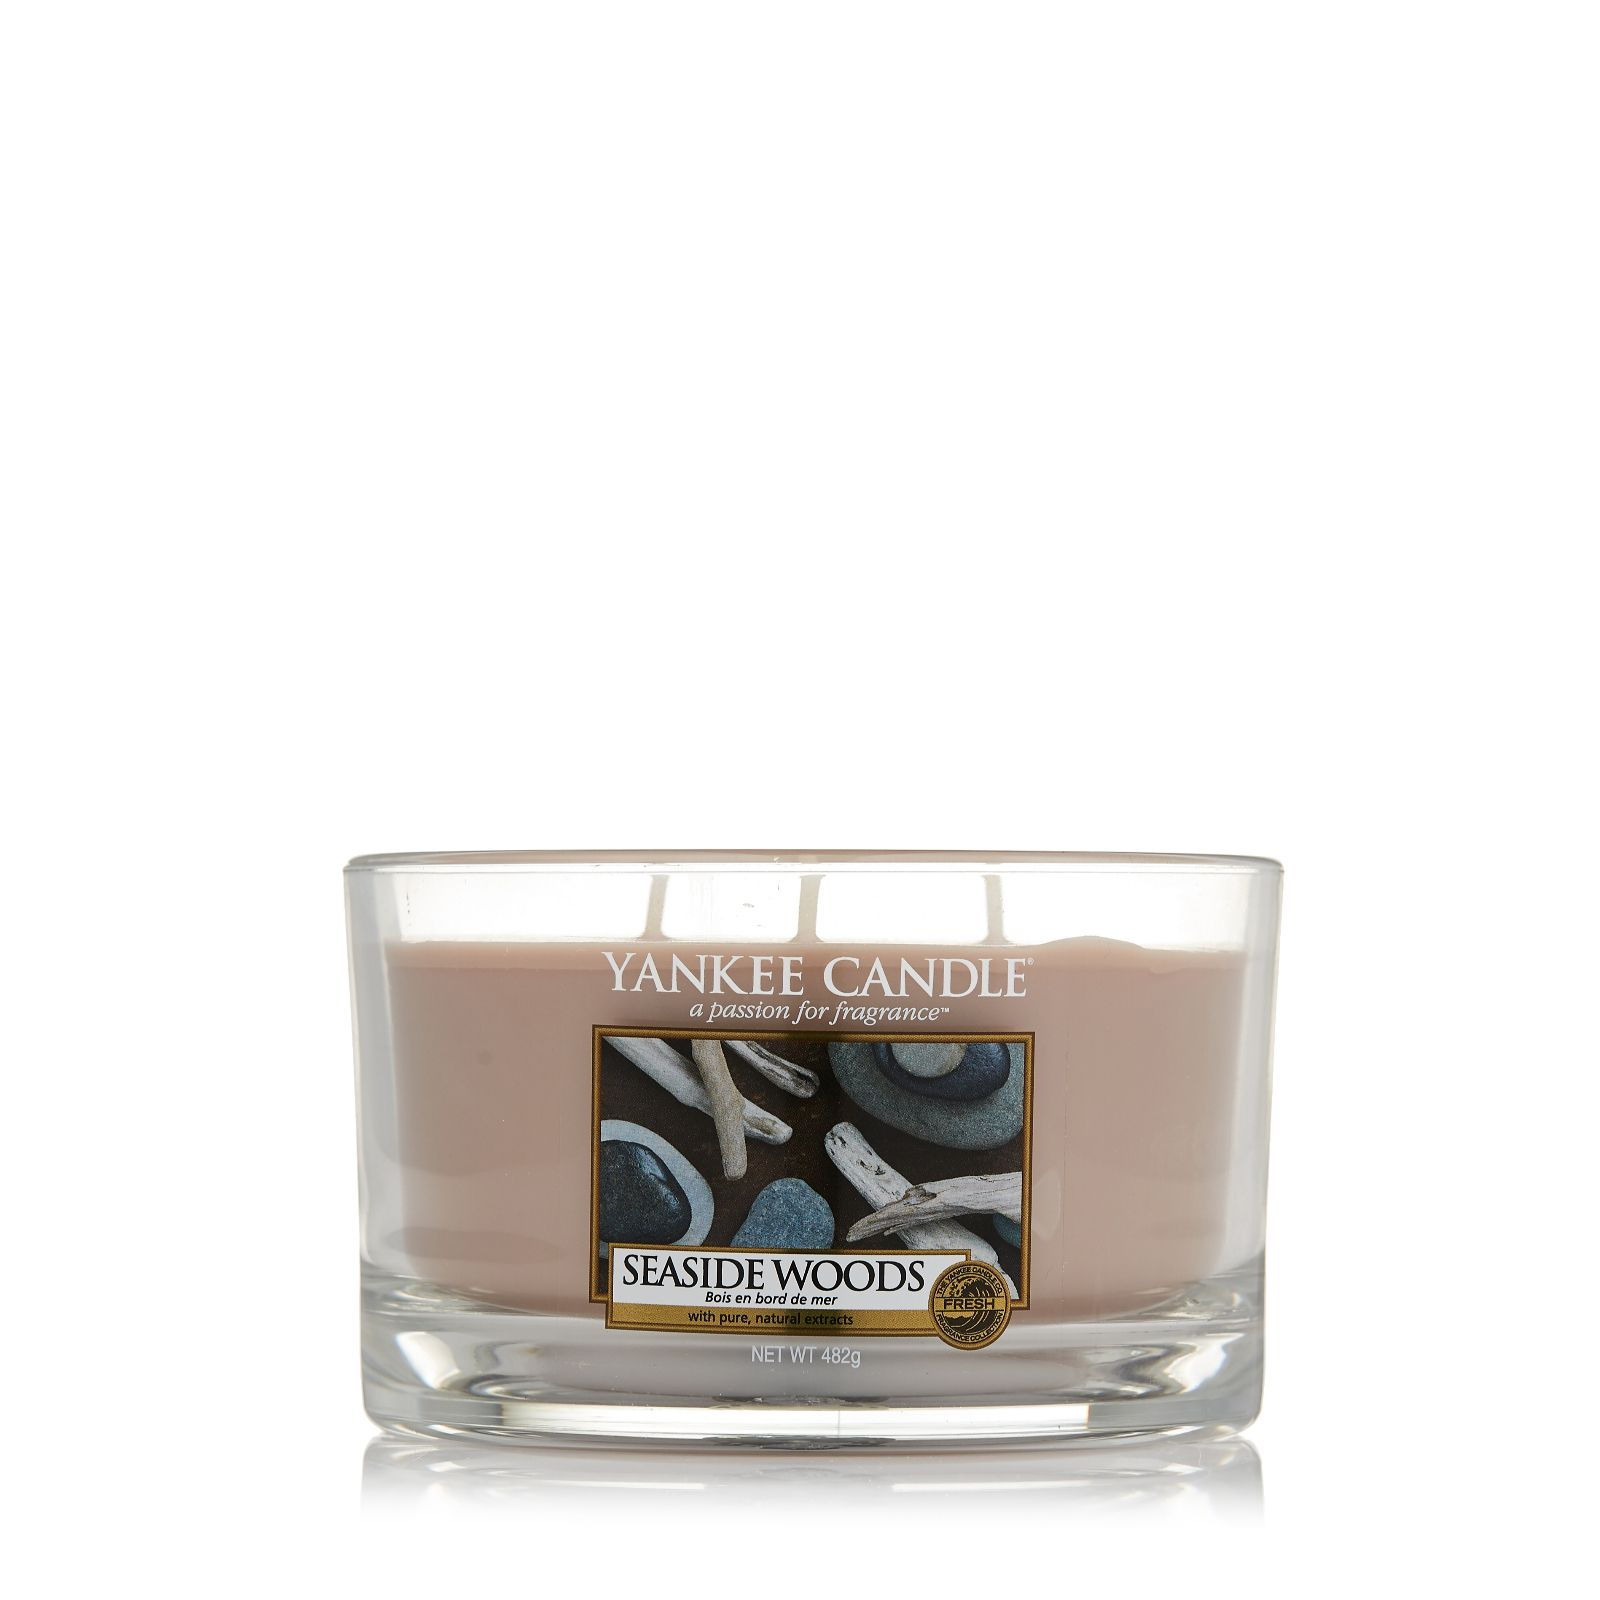 Yankee Candle 3 Piece Multi Wick Tumbler Candle Collection - QVC UK